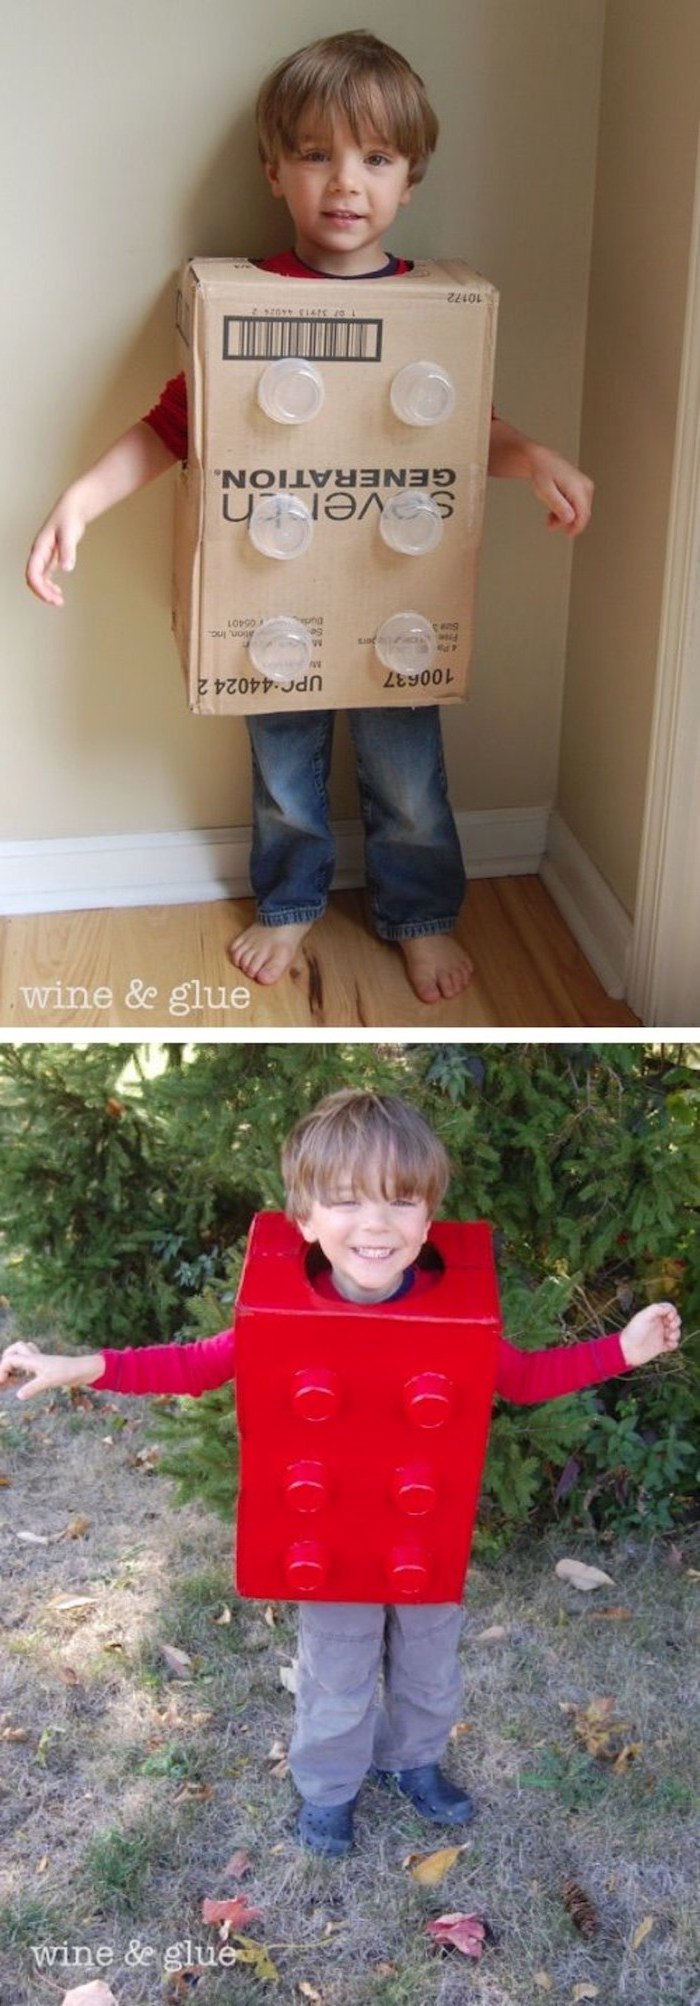 diy costume, superhero costumes for kids, little boy, dressed as a lego brick, painted in red, made of carton